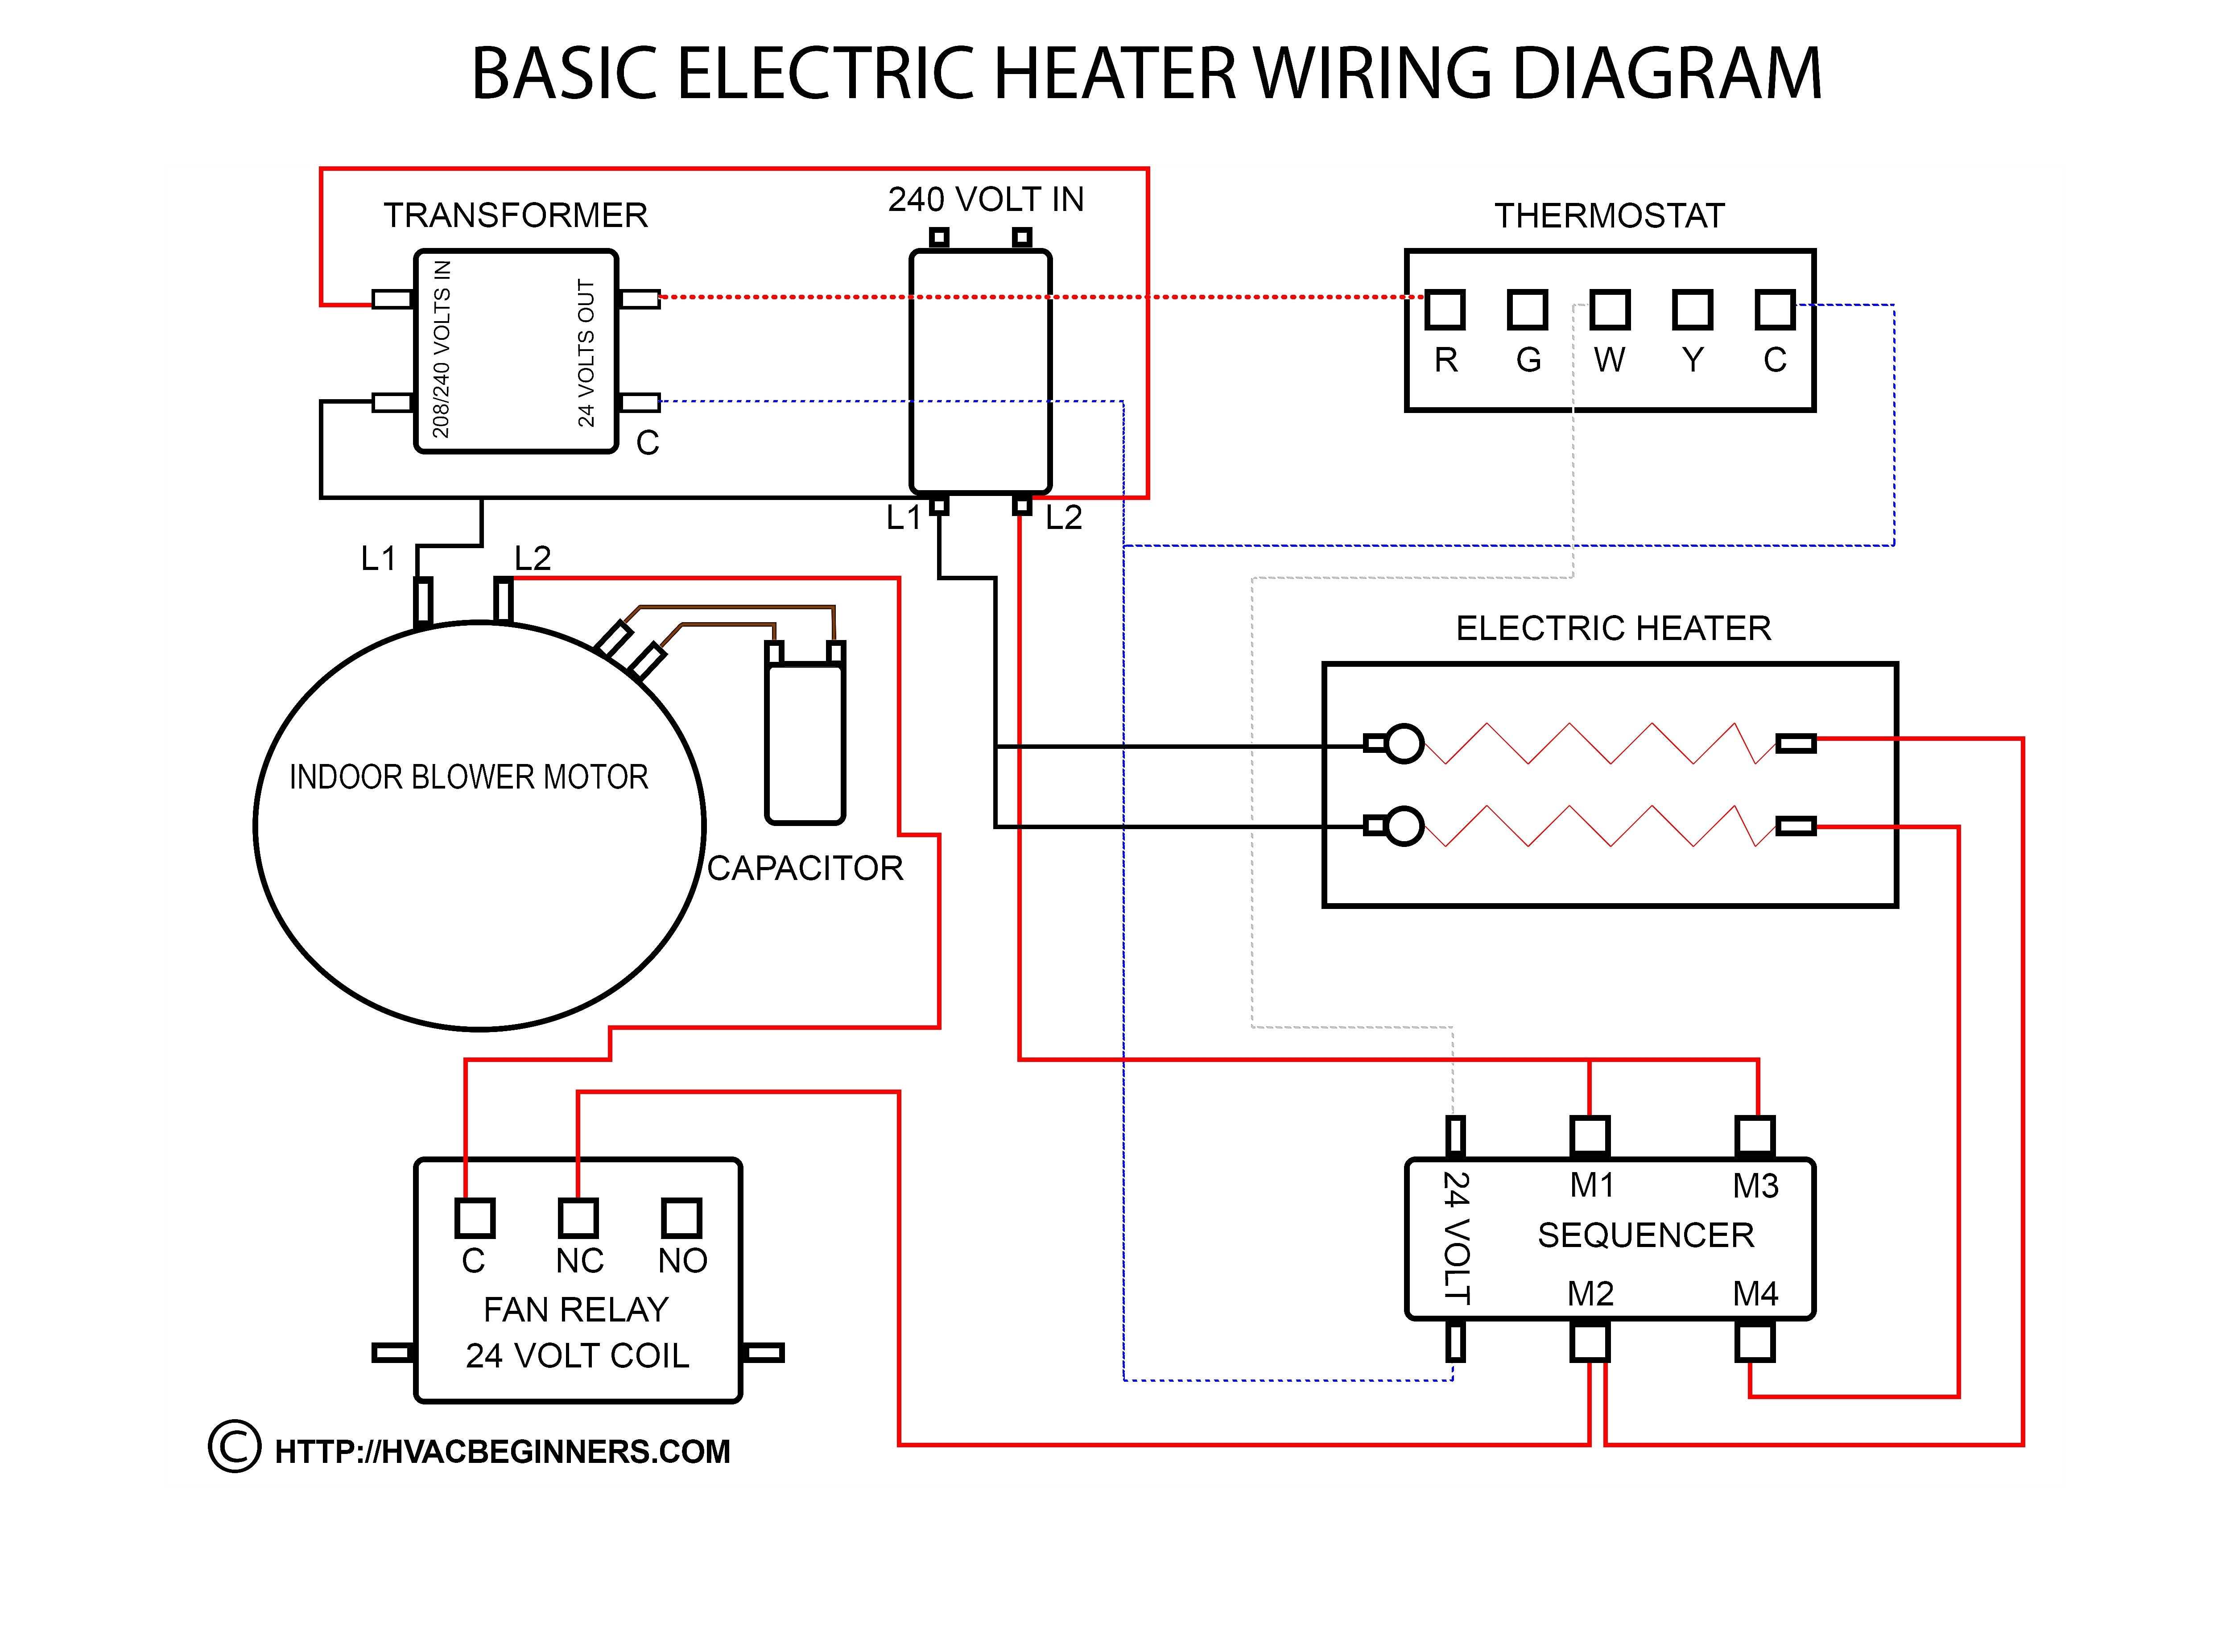 gas furnace thermostat wiring diagram Collection-Gas Furnace thermostat Wiring Diagram Rheem thermostat Wiring Diagram Inspirational Gas Furnace Wiring Diagram Excellent 7-r